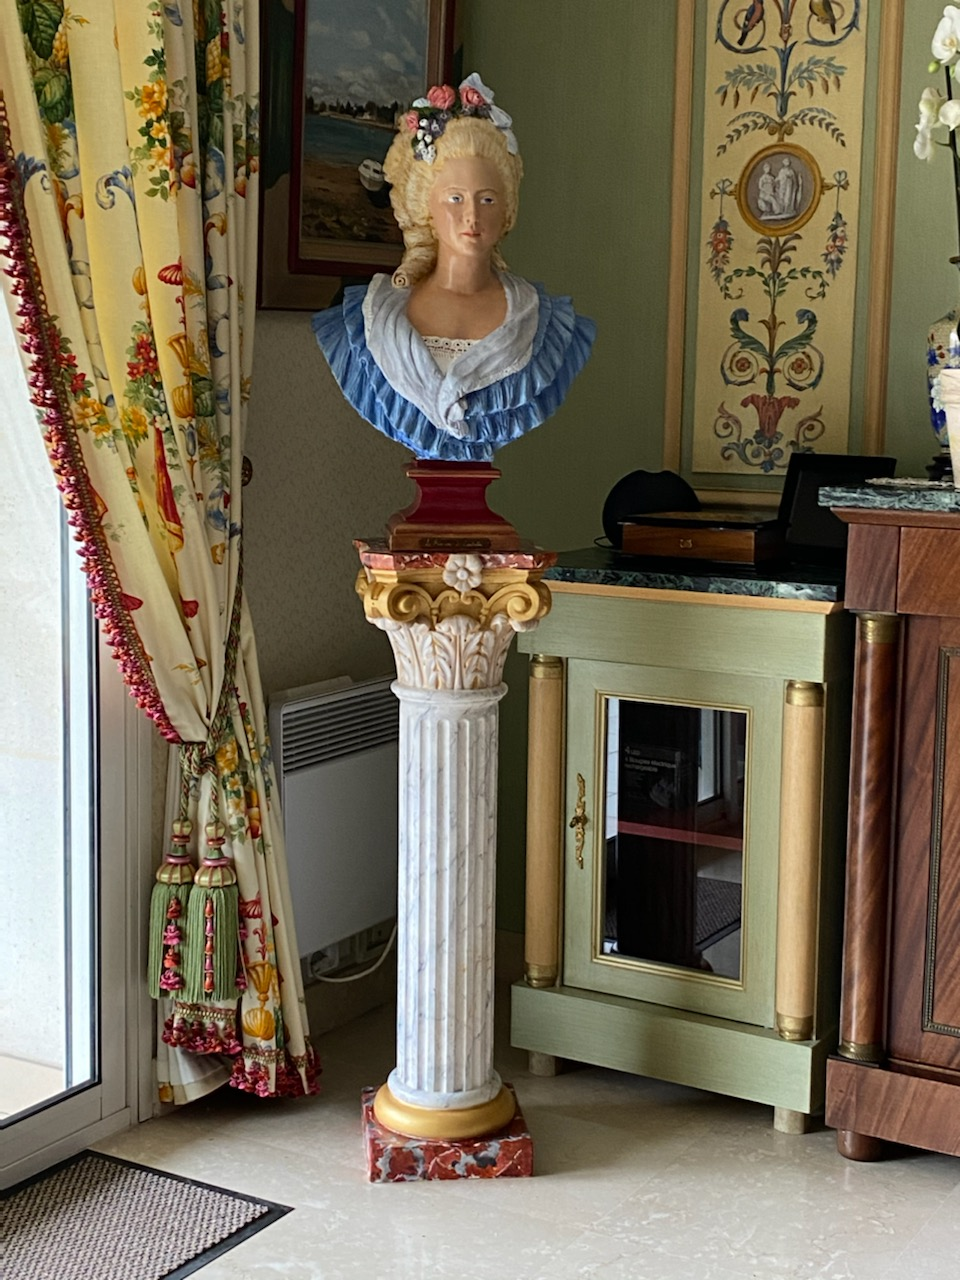 Decorative painting, painted column and chest